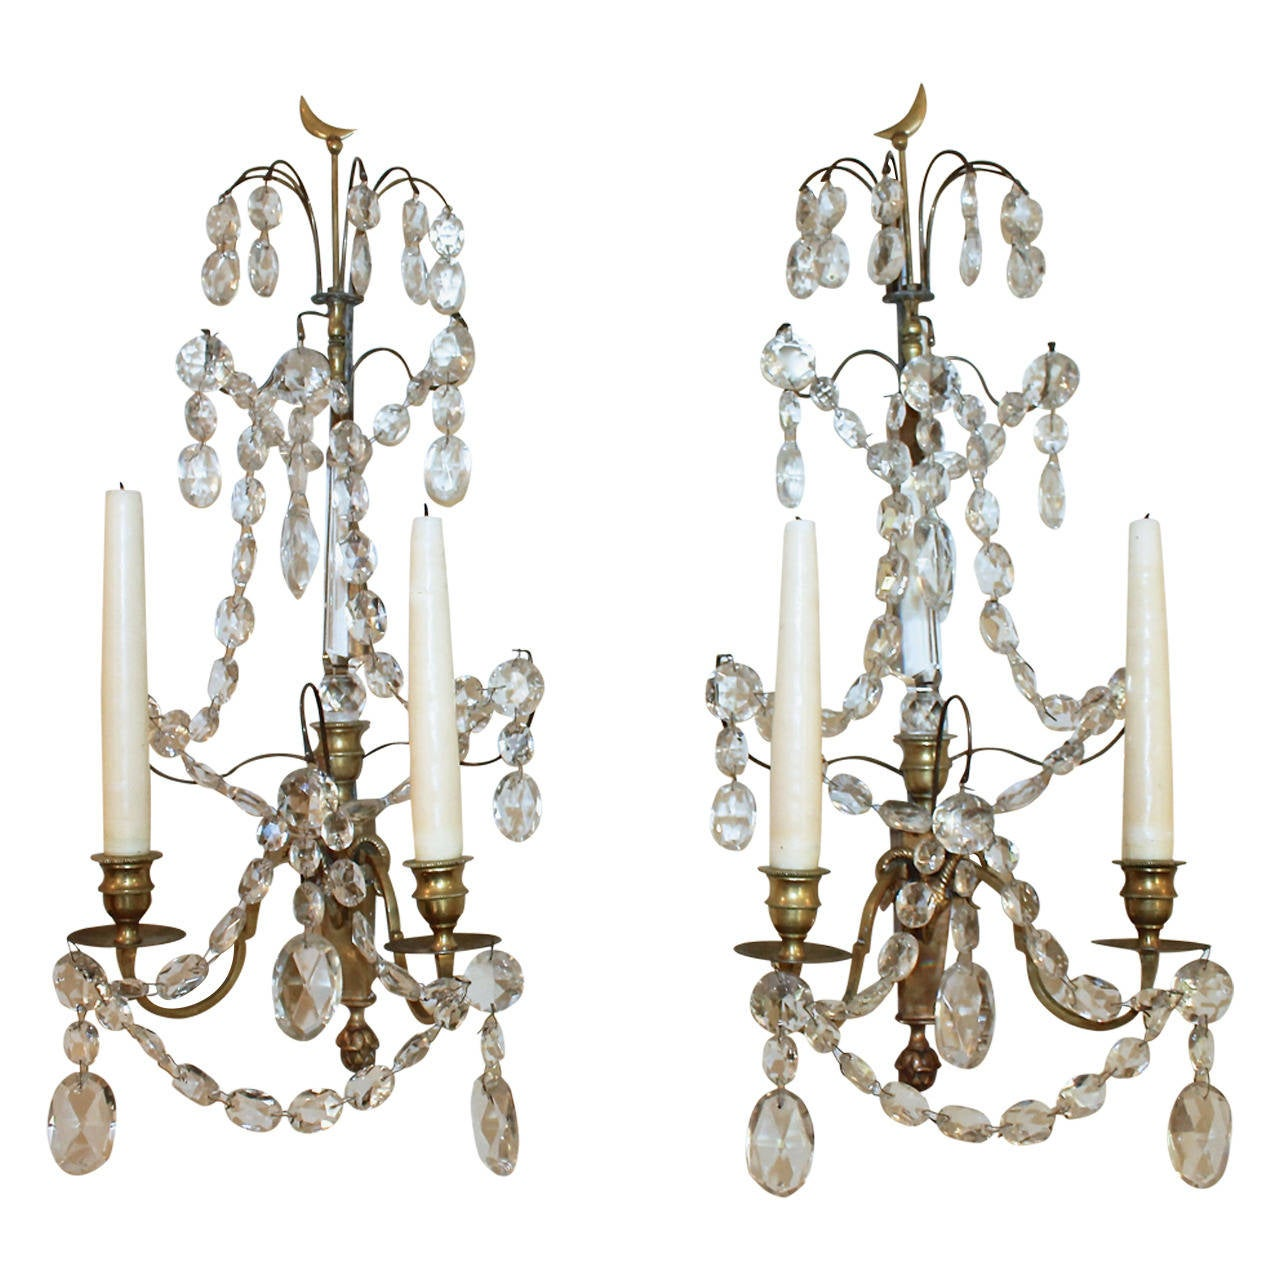 Charmant Pair Of Swedish Gustavian Baltic Candle Wall Sconces For Sale